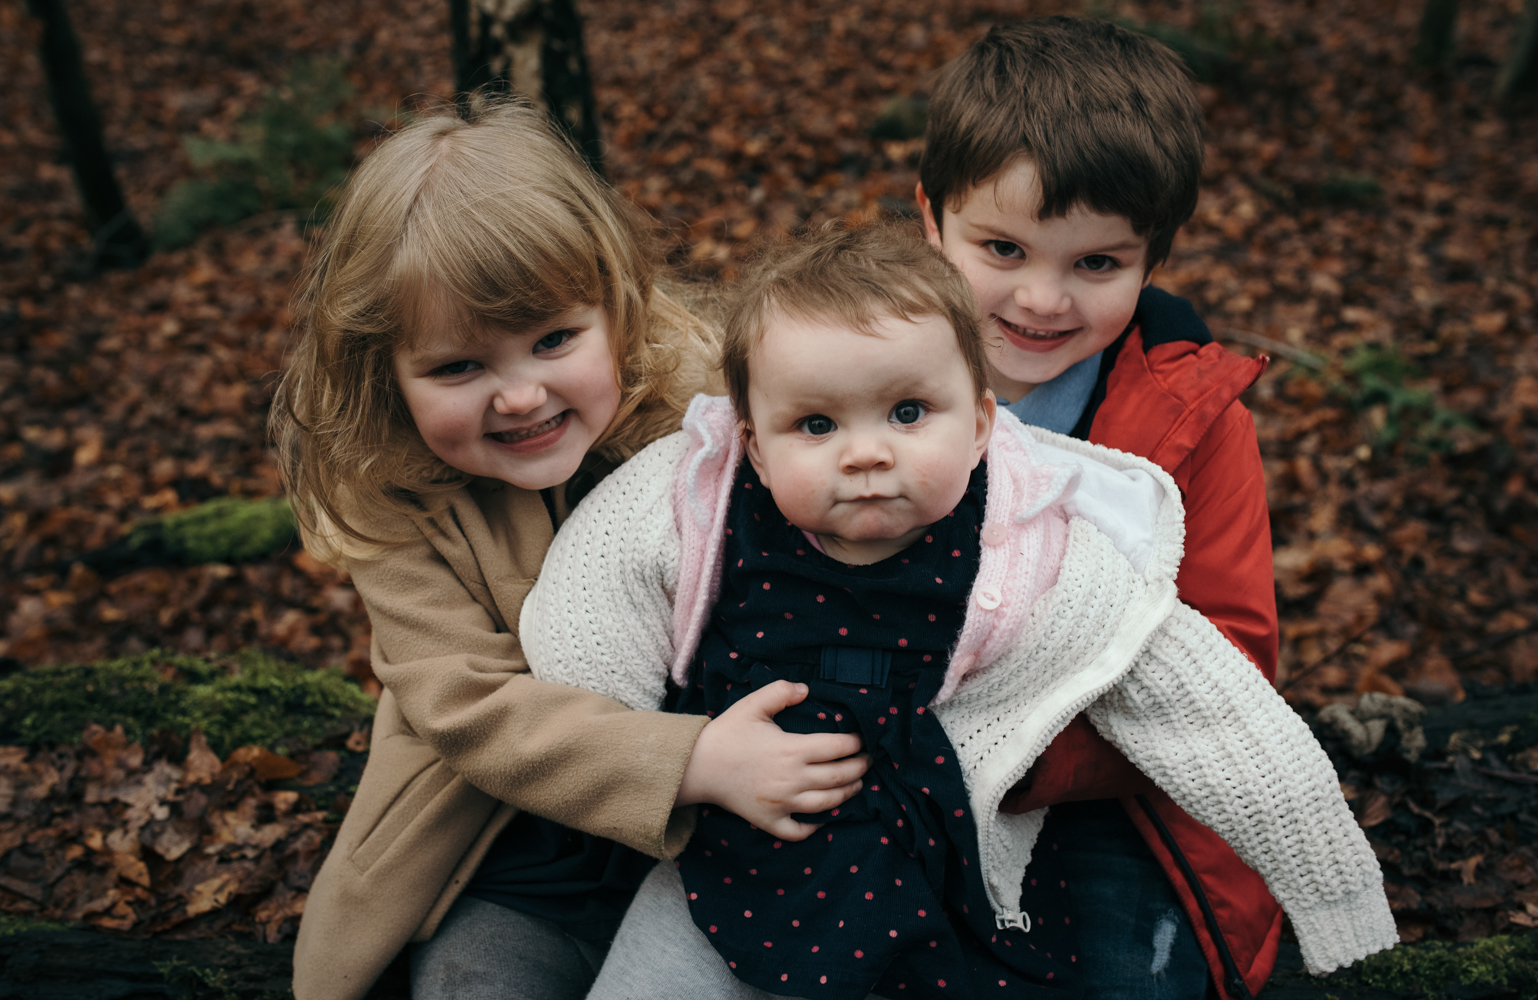 Portrait of the three kids together